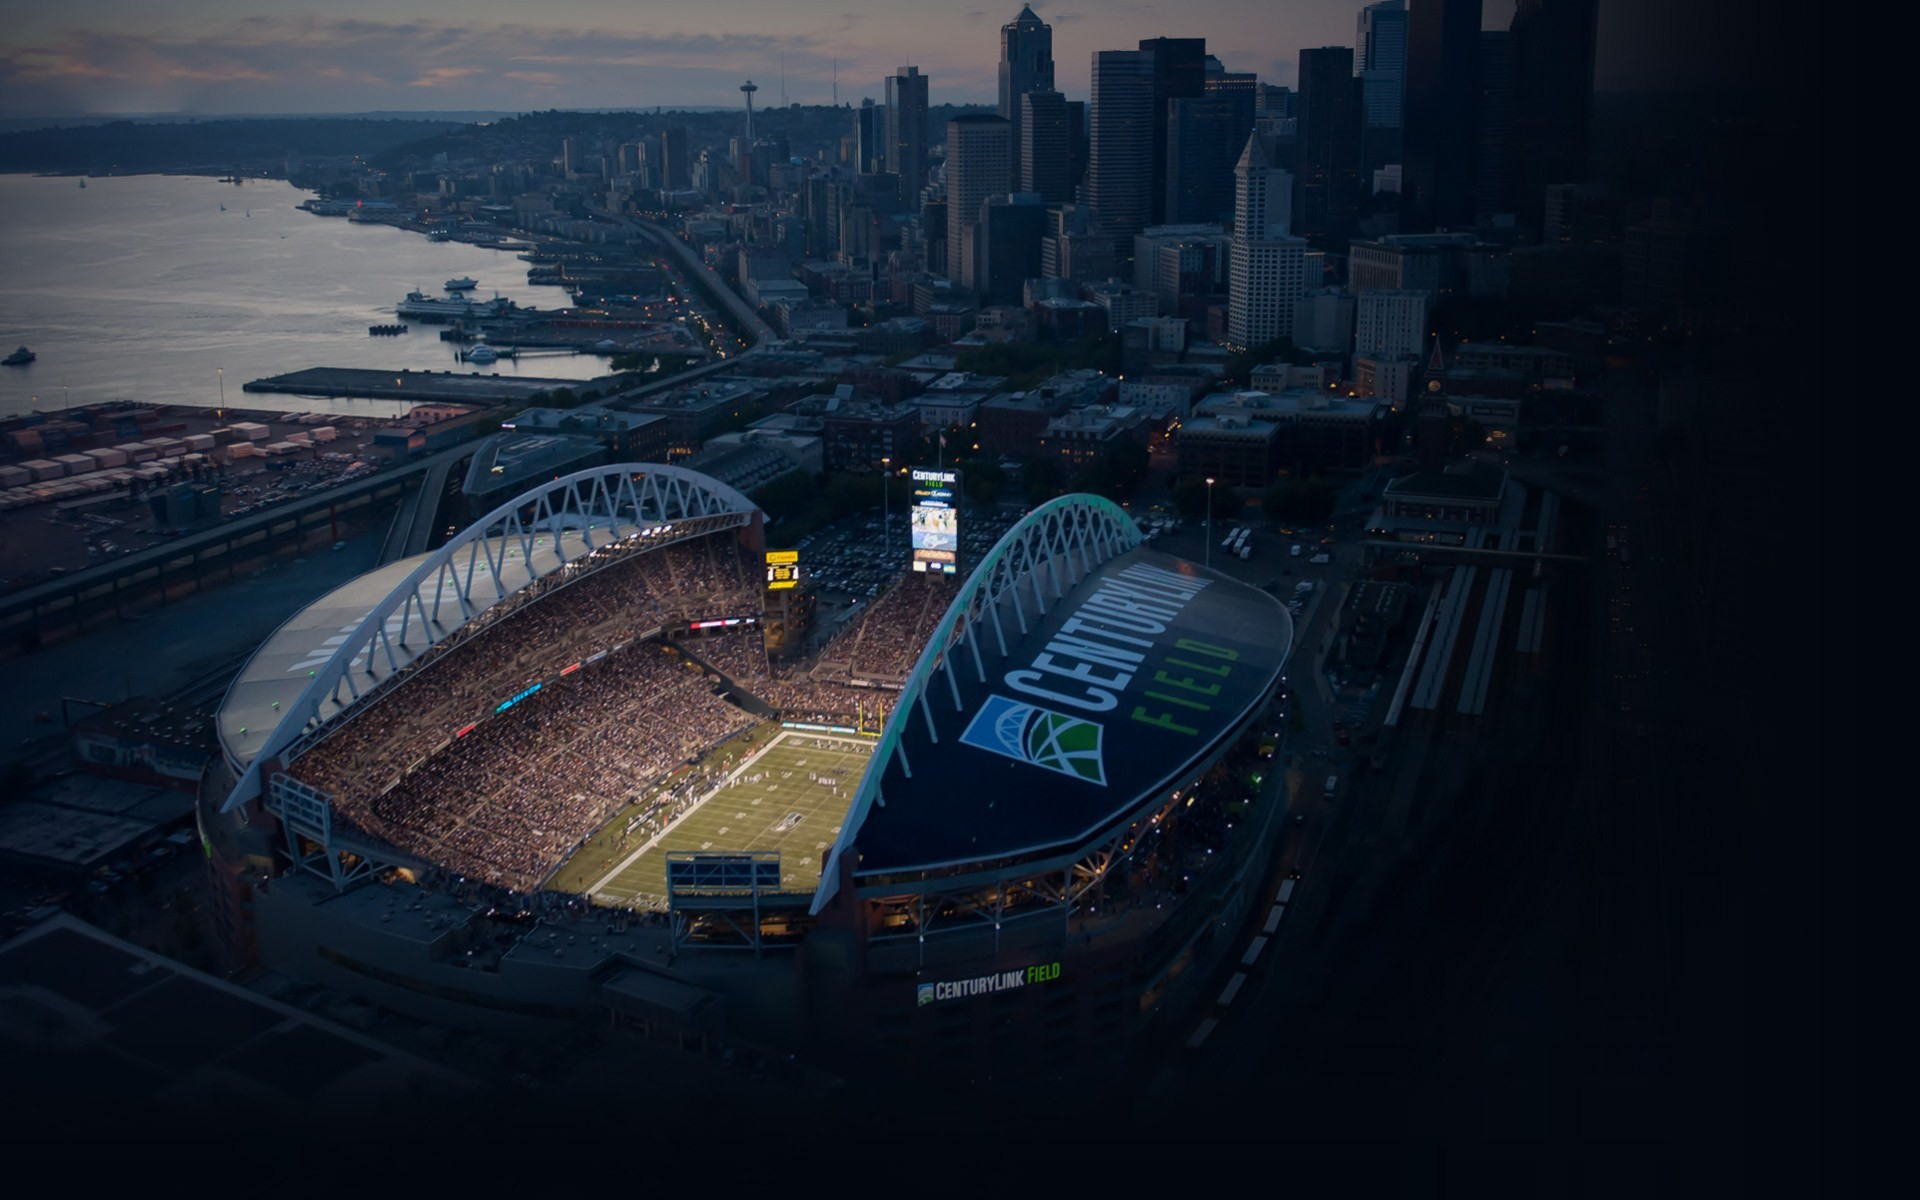 Seattle seahawks iphone 6 wallpaper 68 images 1920x1200 seattle seahawks stadium computer wallpapers desktop backgrounds voltagebd Image collections